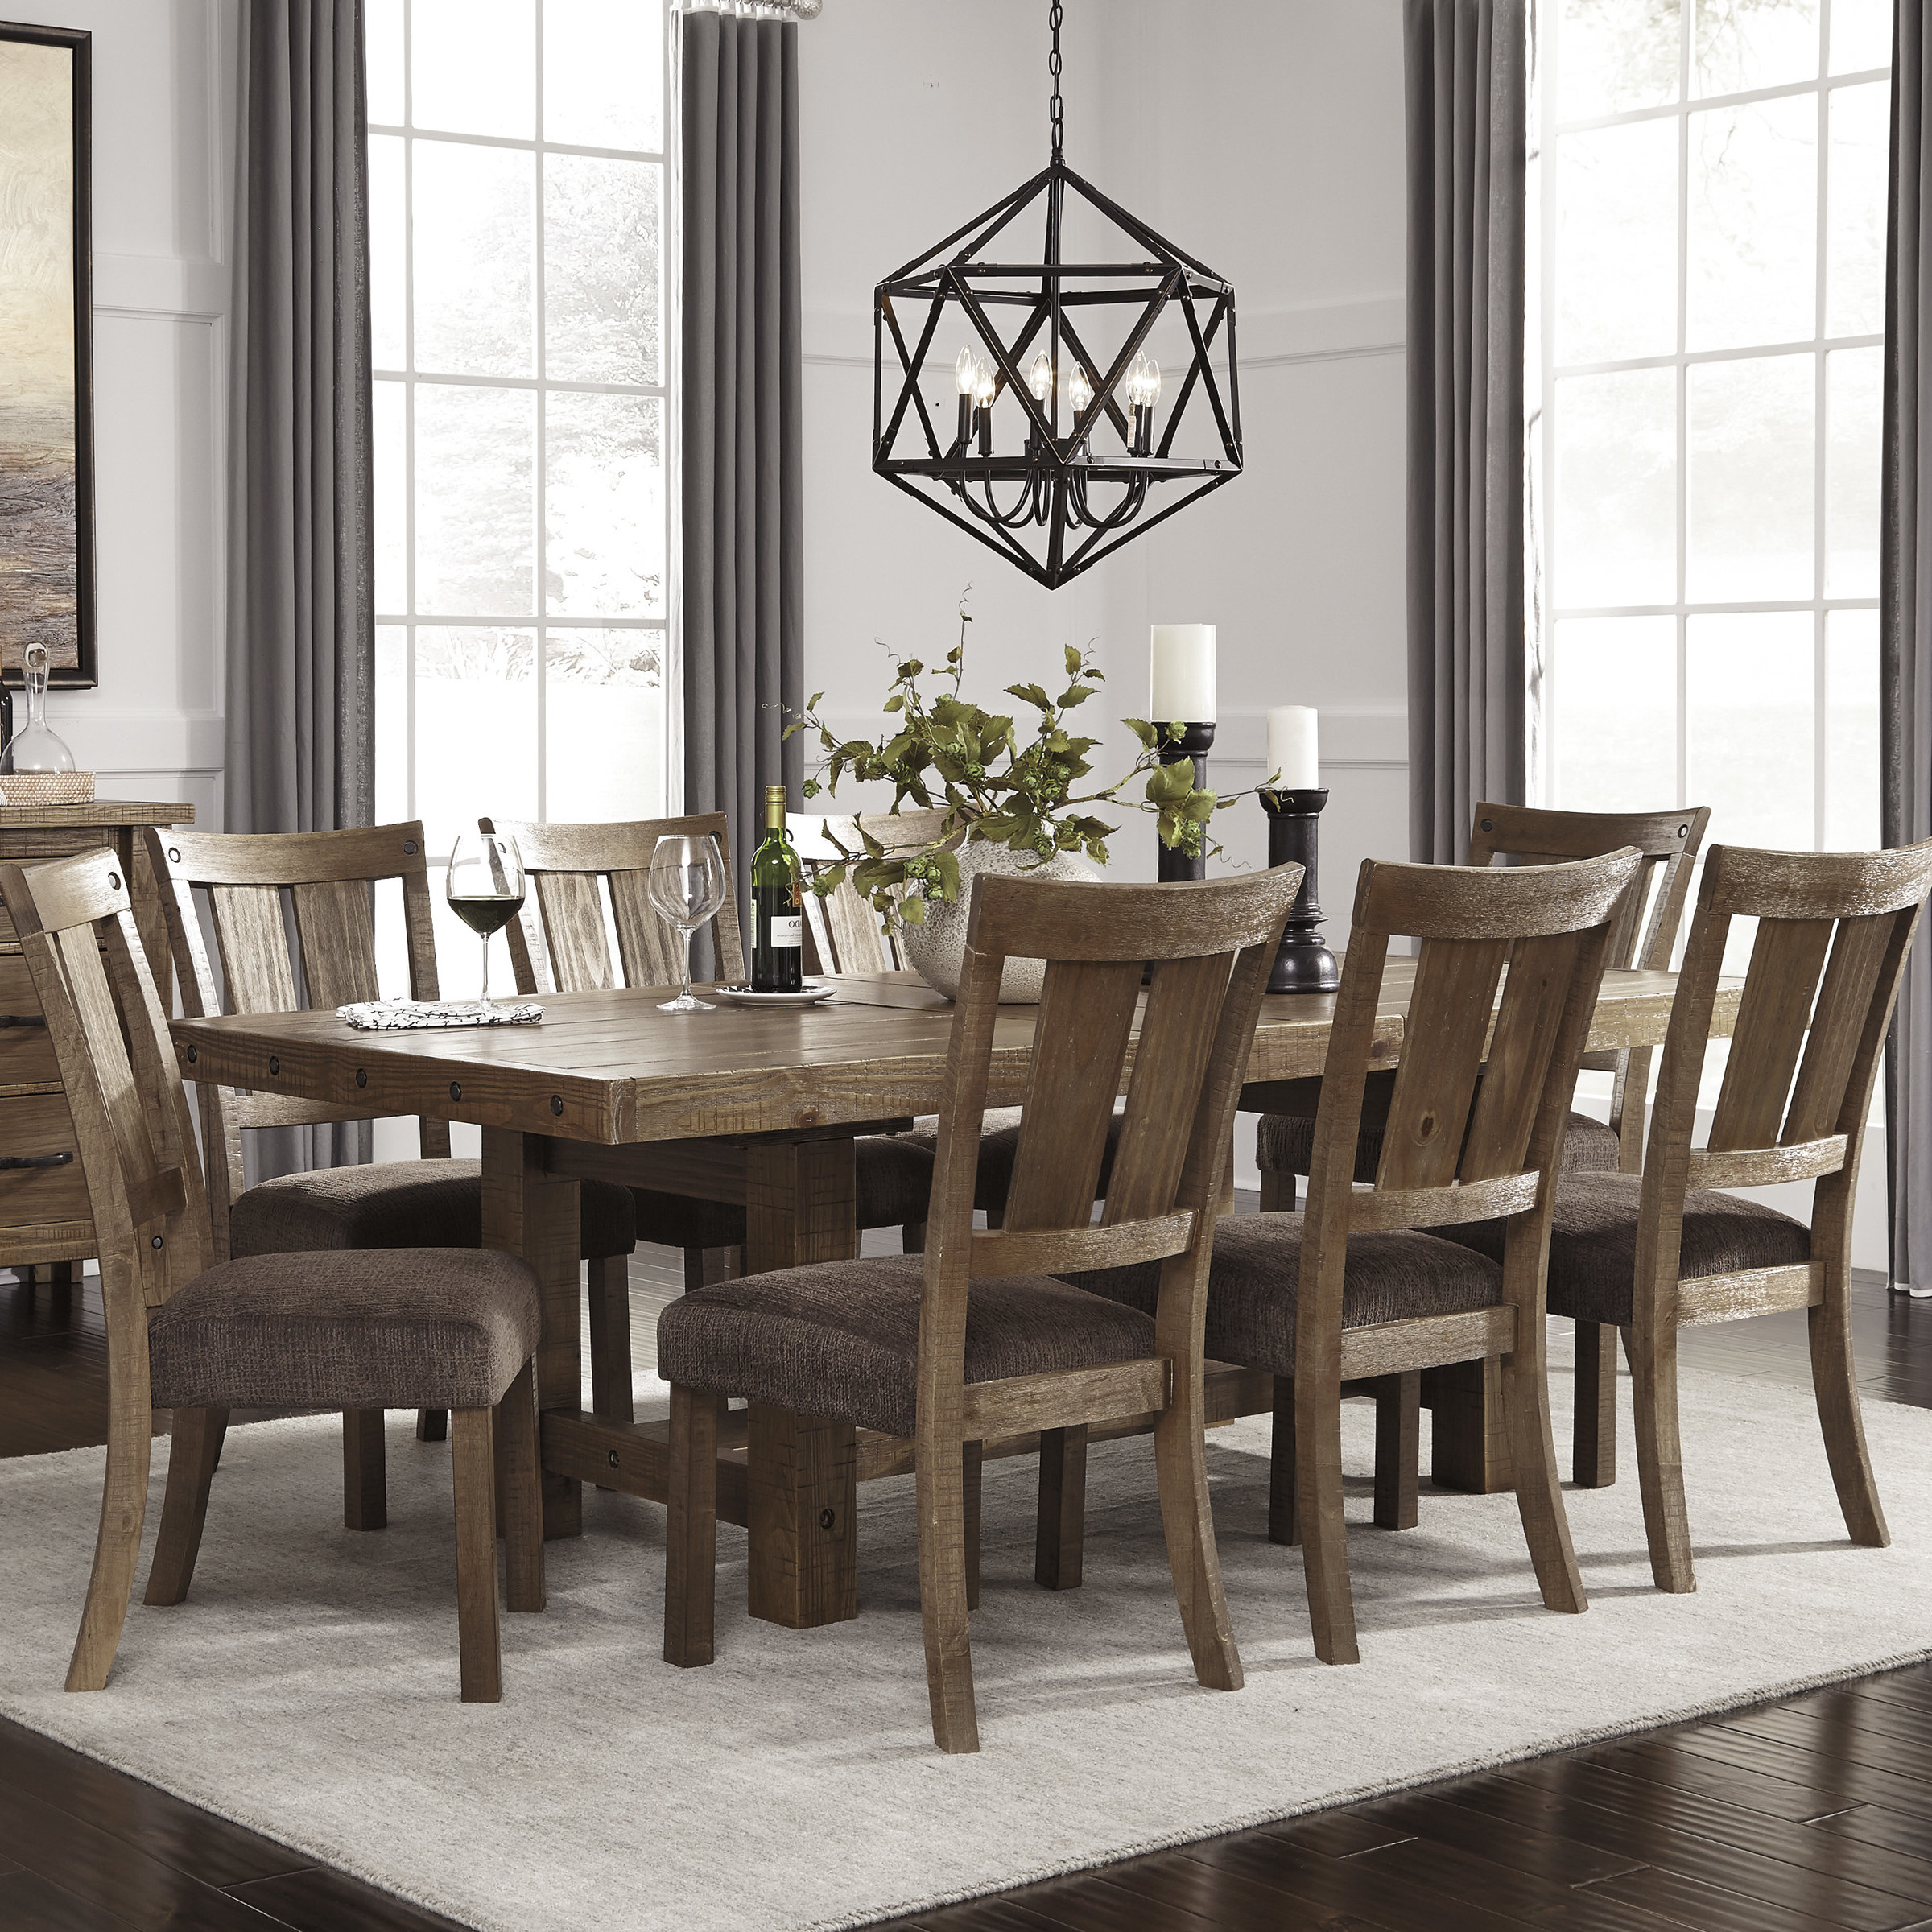 Newest North Reading 5 Piece Dining Table Sets Pertaining To Kitchen & Dining Room Sets You'll Love (View 14 of 25)